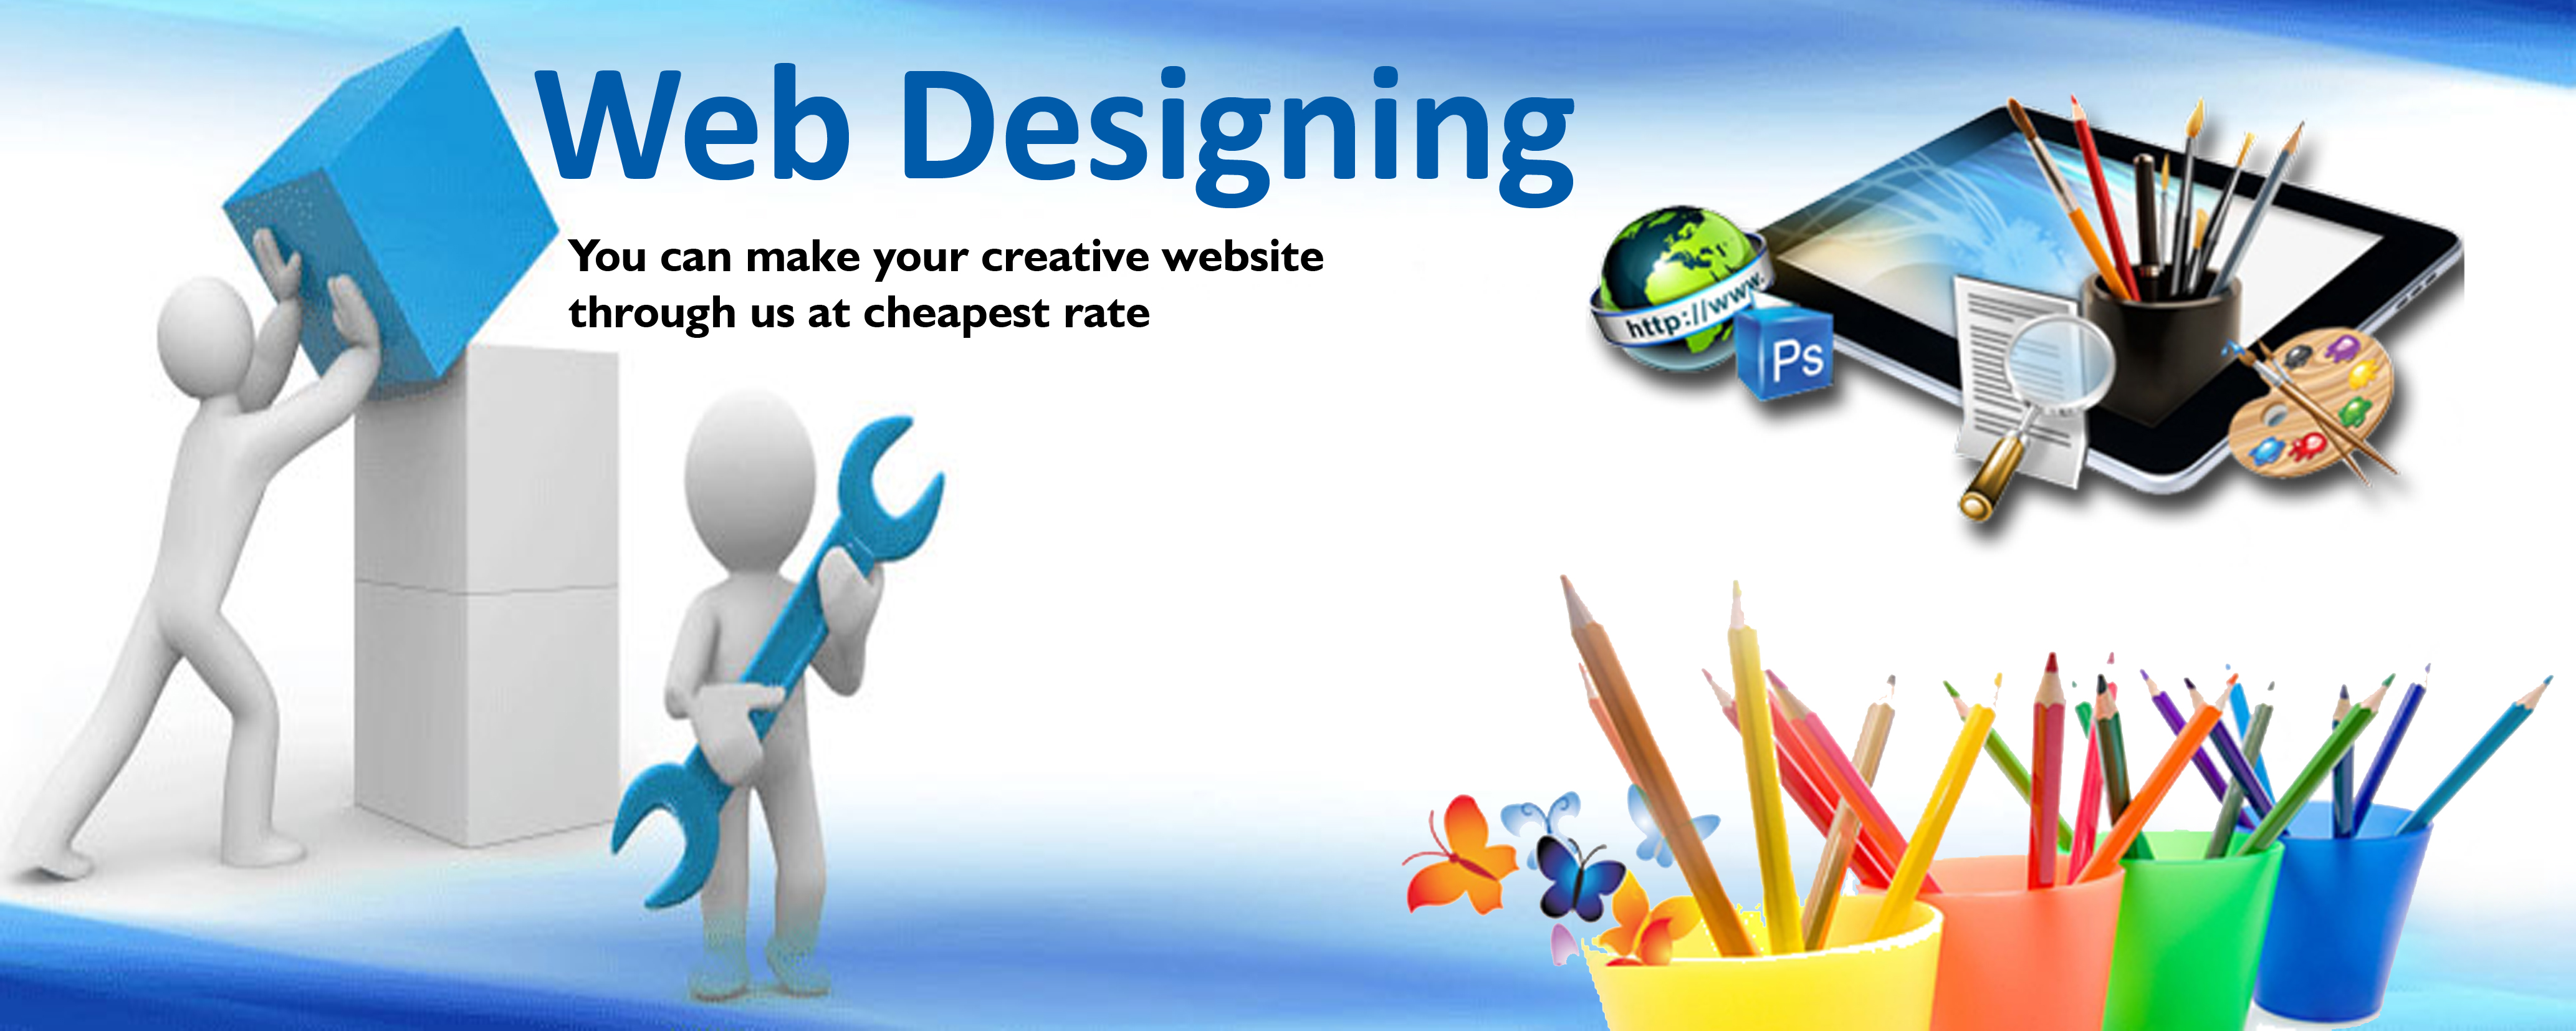 Website Designer And Web Design Company In Hyderabad Seoipro Web Services